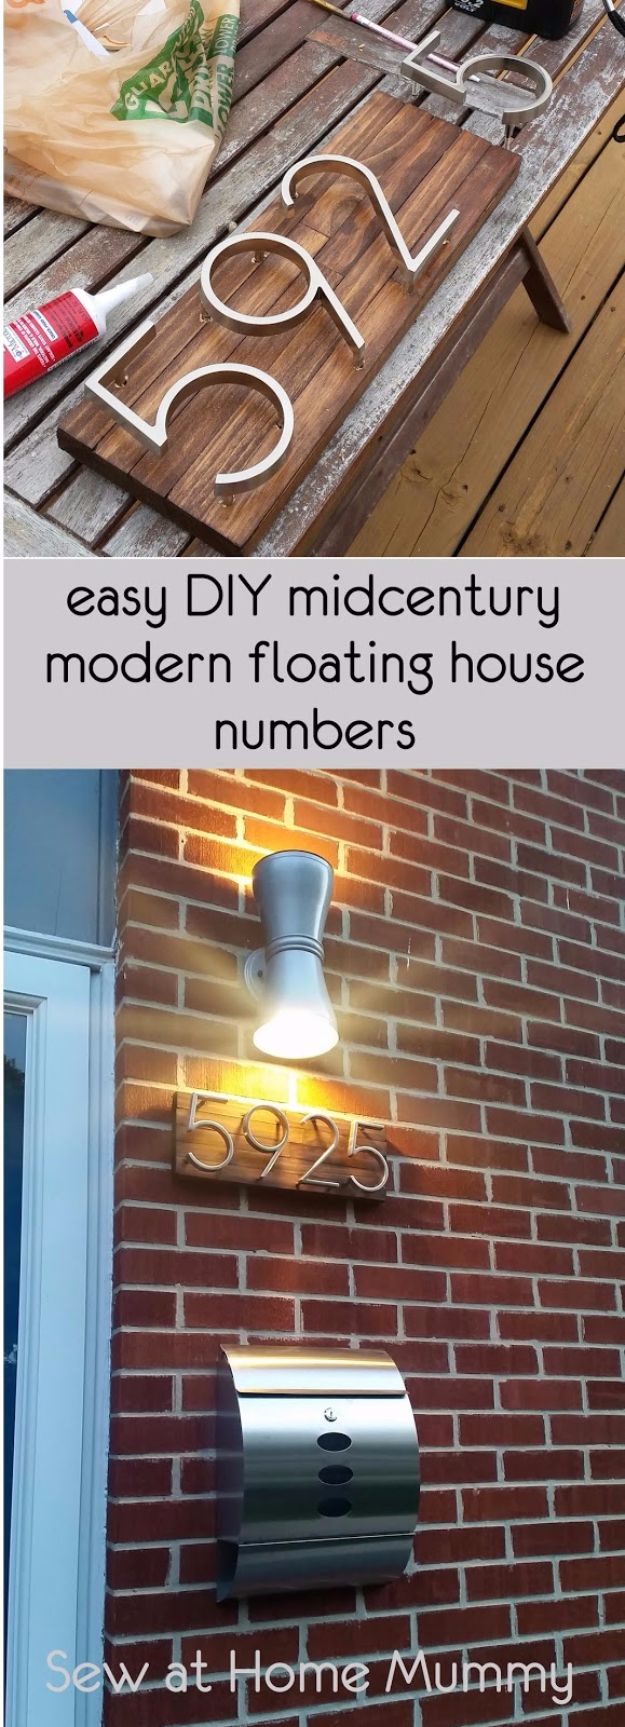 DIY House Numbers - Mid Century Modern Floating House Numbers - DIY Numbers To Put In Front Yard and At Front Door - Architectural Numbers and Creative Do It Yourself Projects for Making House Numbers - Easy Step by Step Tutorials and Project Ideas for Home Improvement on A Budget http://diyjoy.com/diy-house-numbers